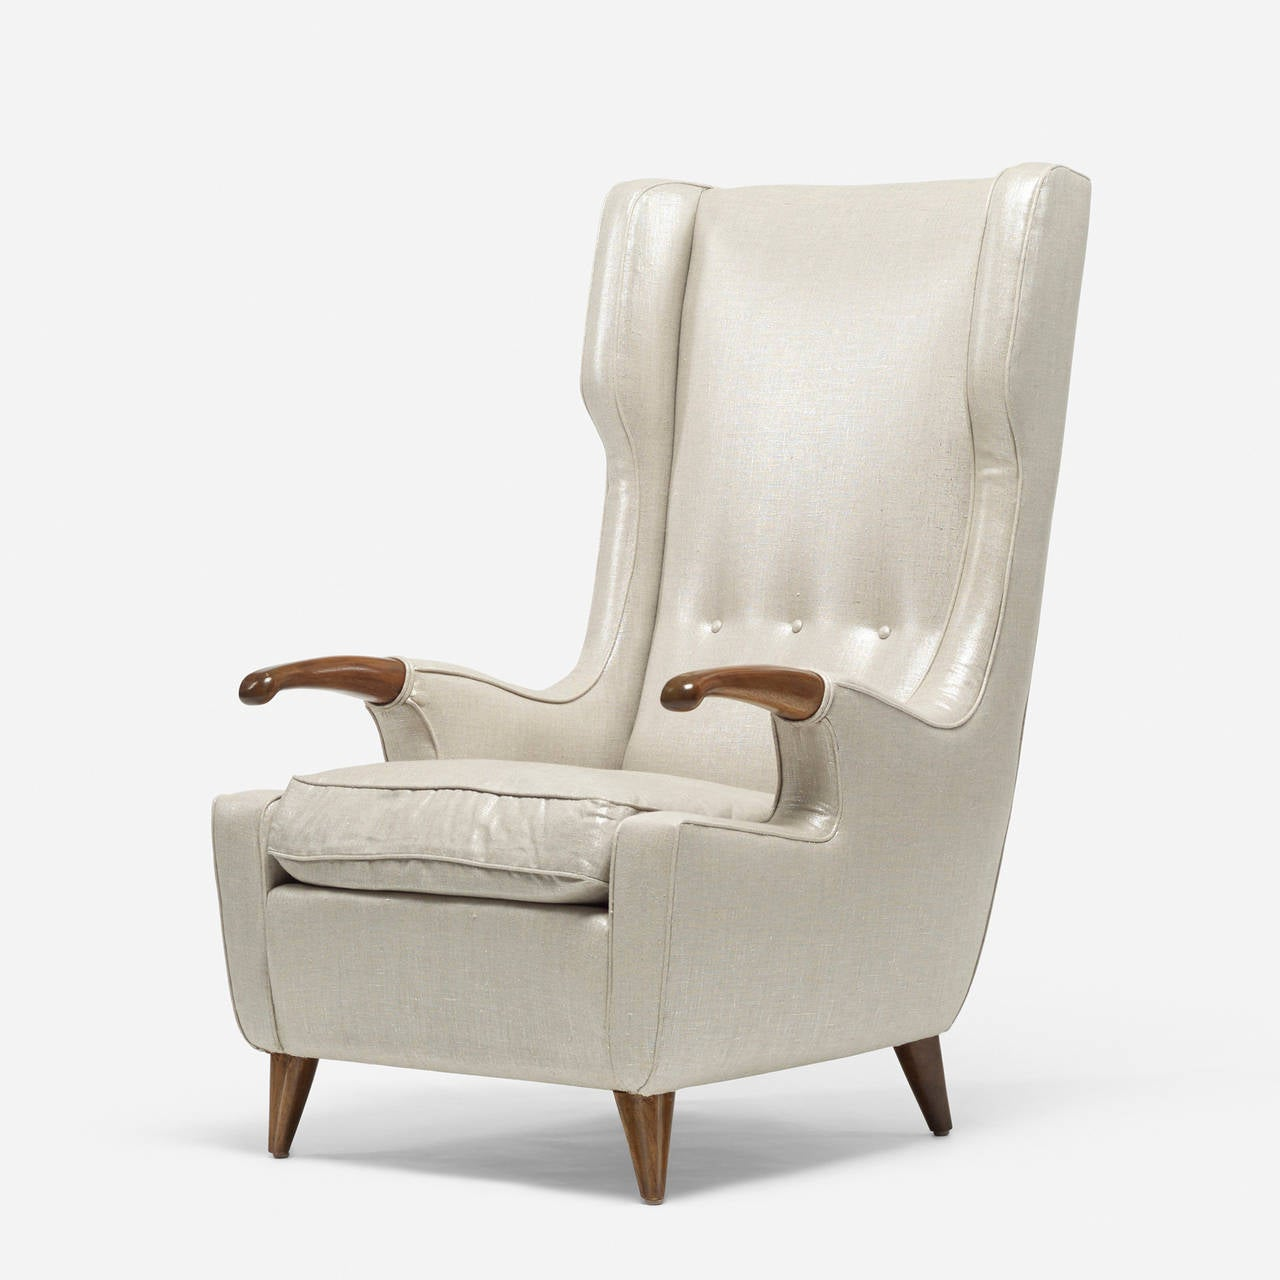 Pier luigi colli armchair model 505 at 1stdibs - Pier one lounge chairs ...